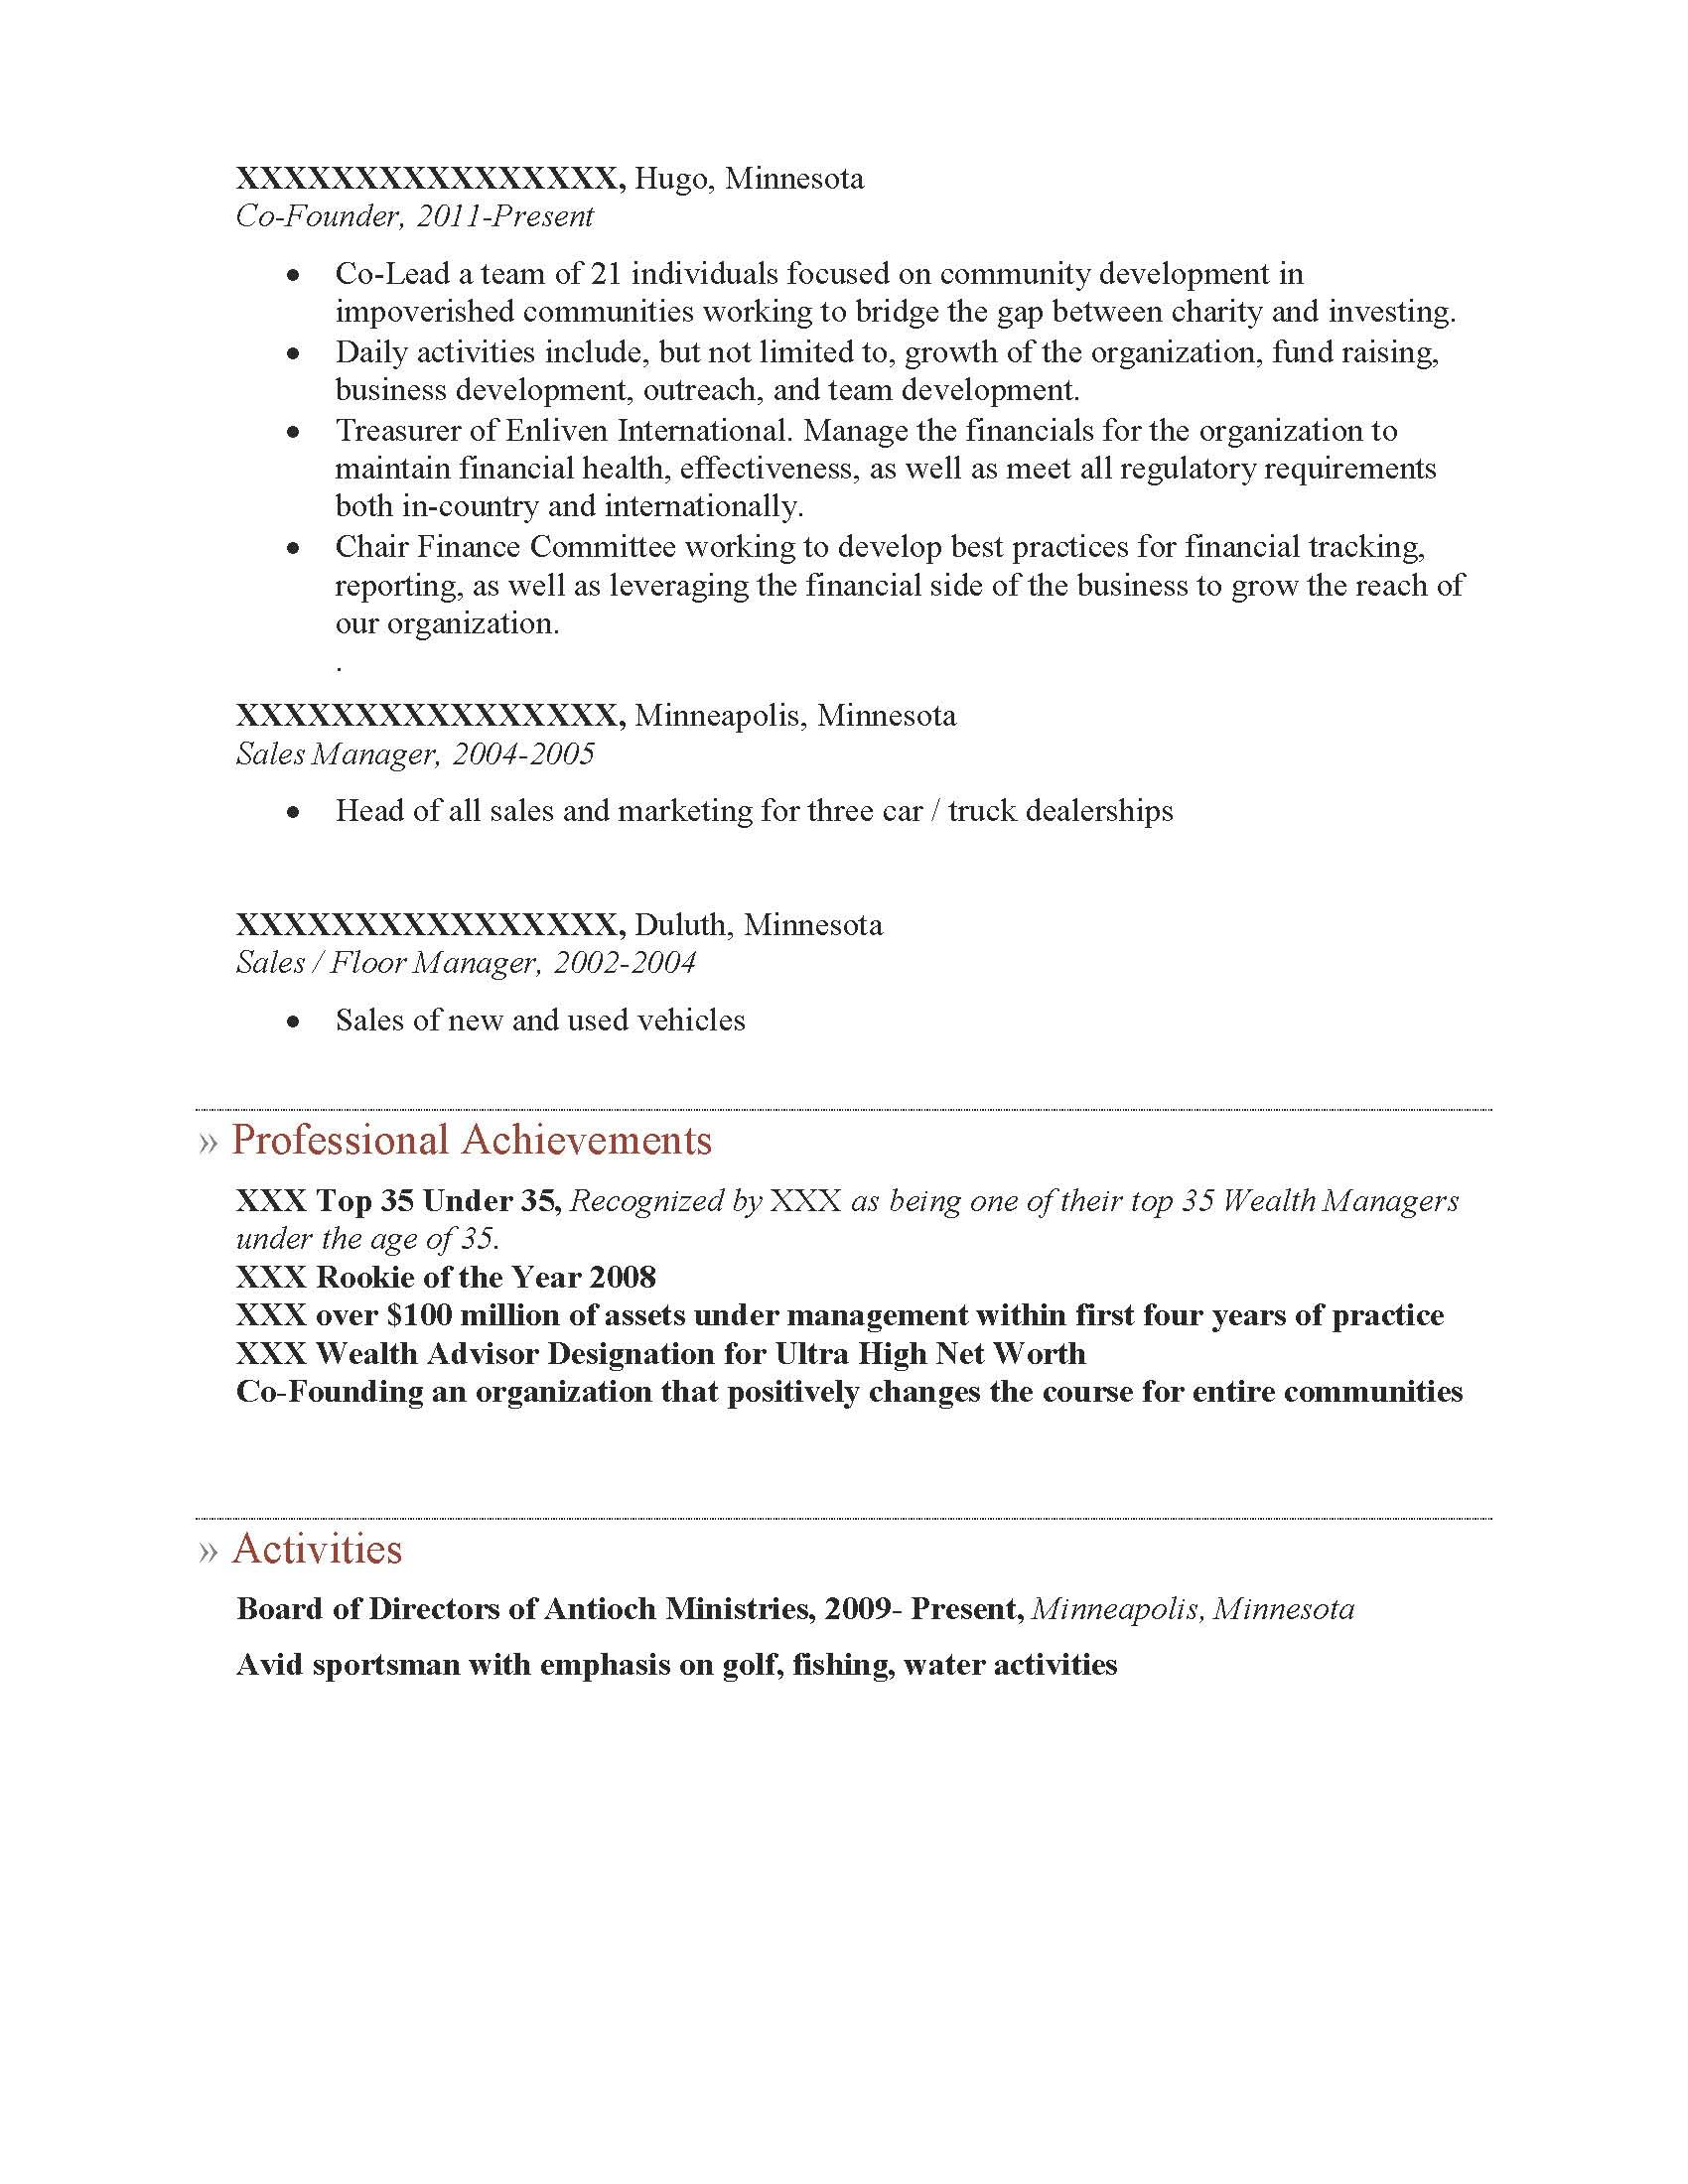 Executive MBA Weekend Program Resume Sample - Before-2